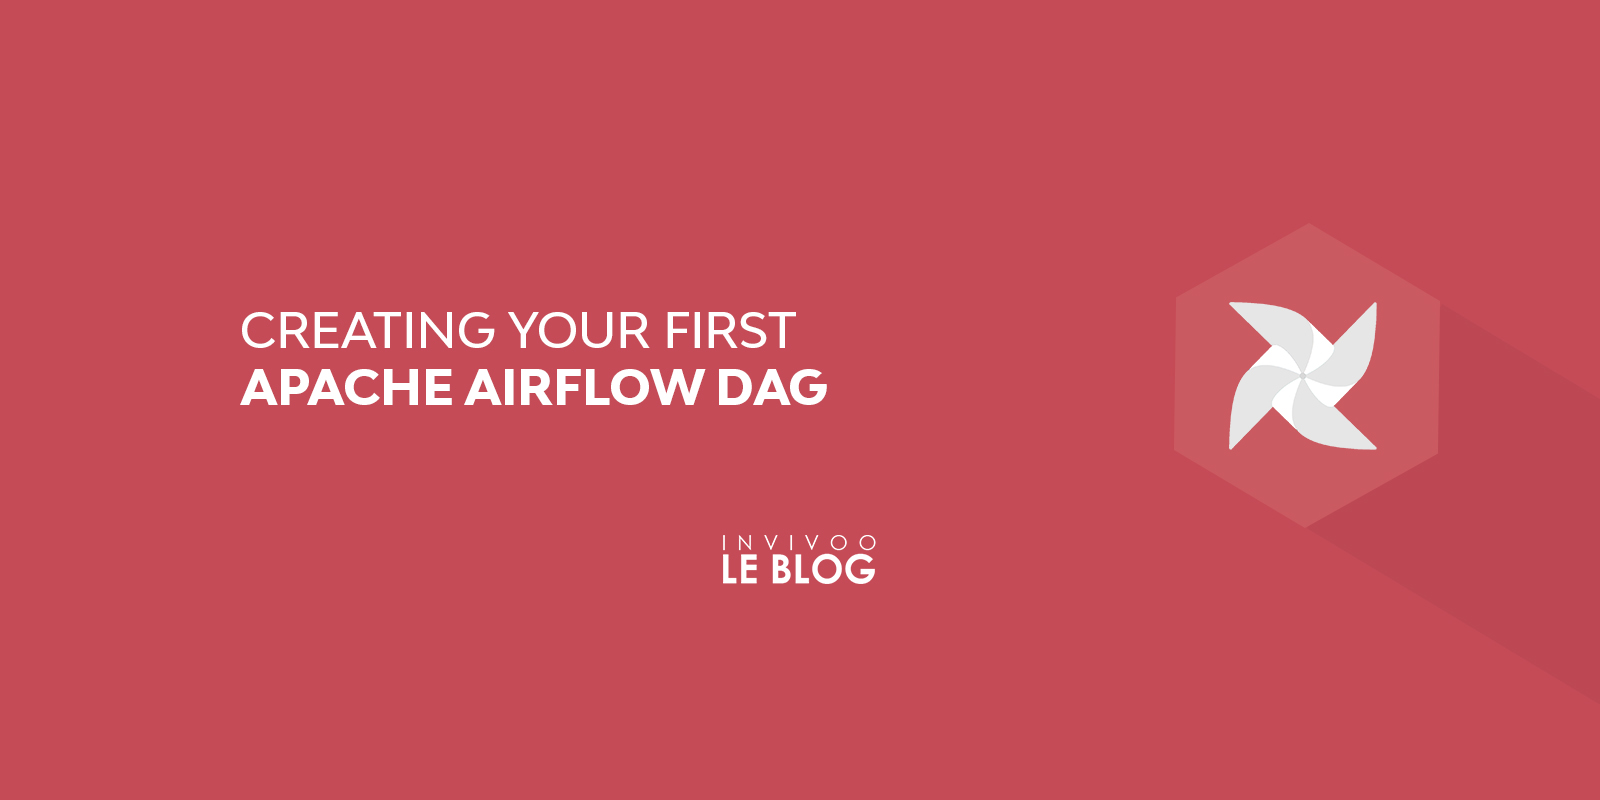 Creating your first Apache Airflow DAG